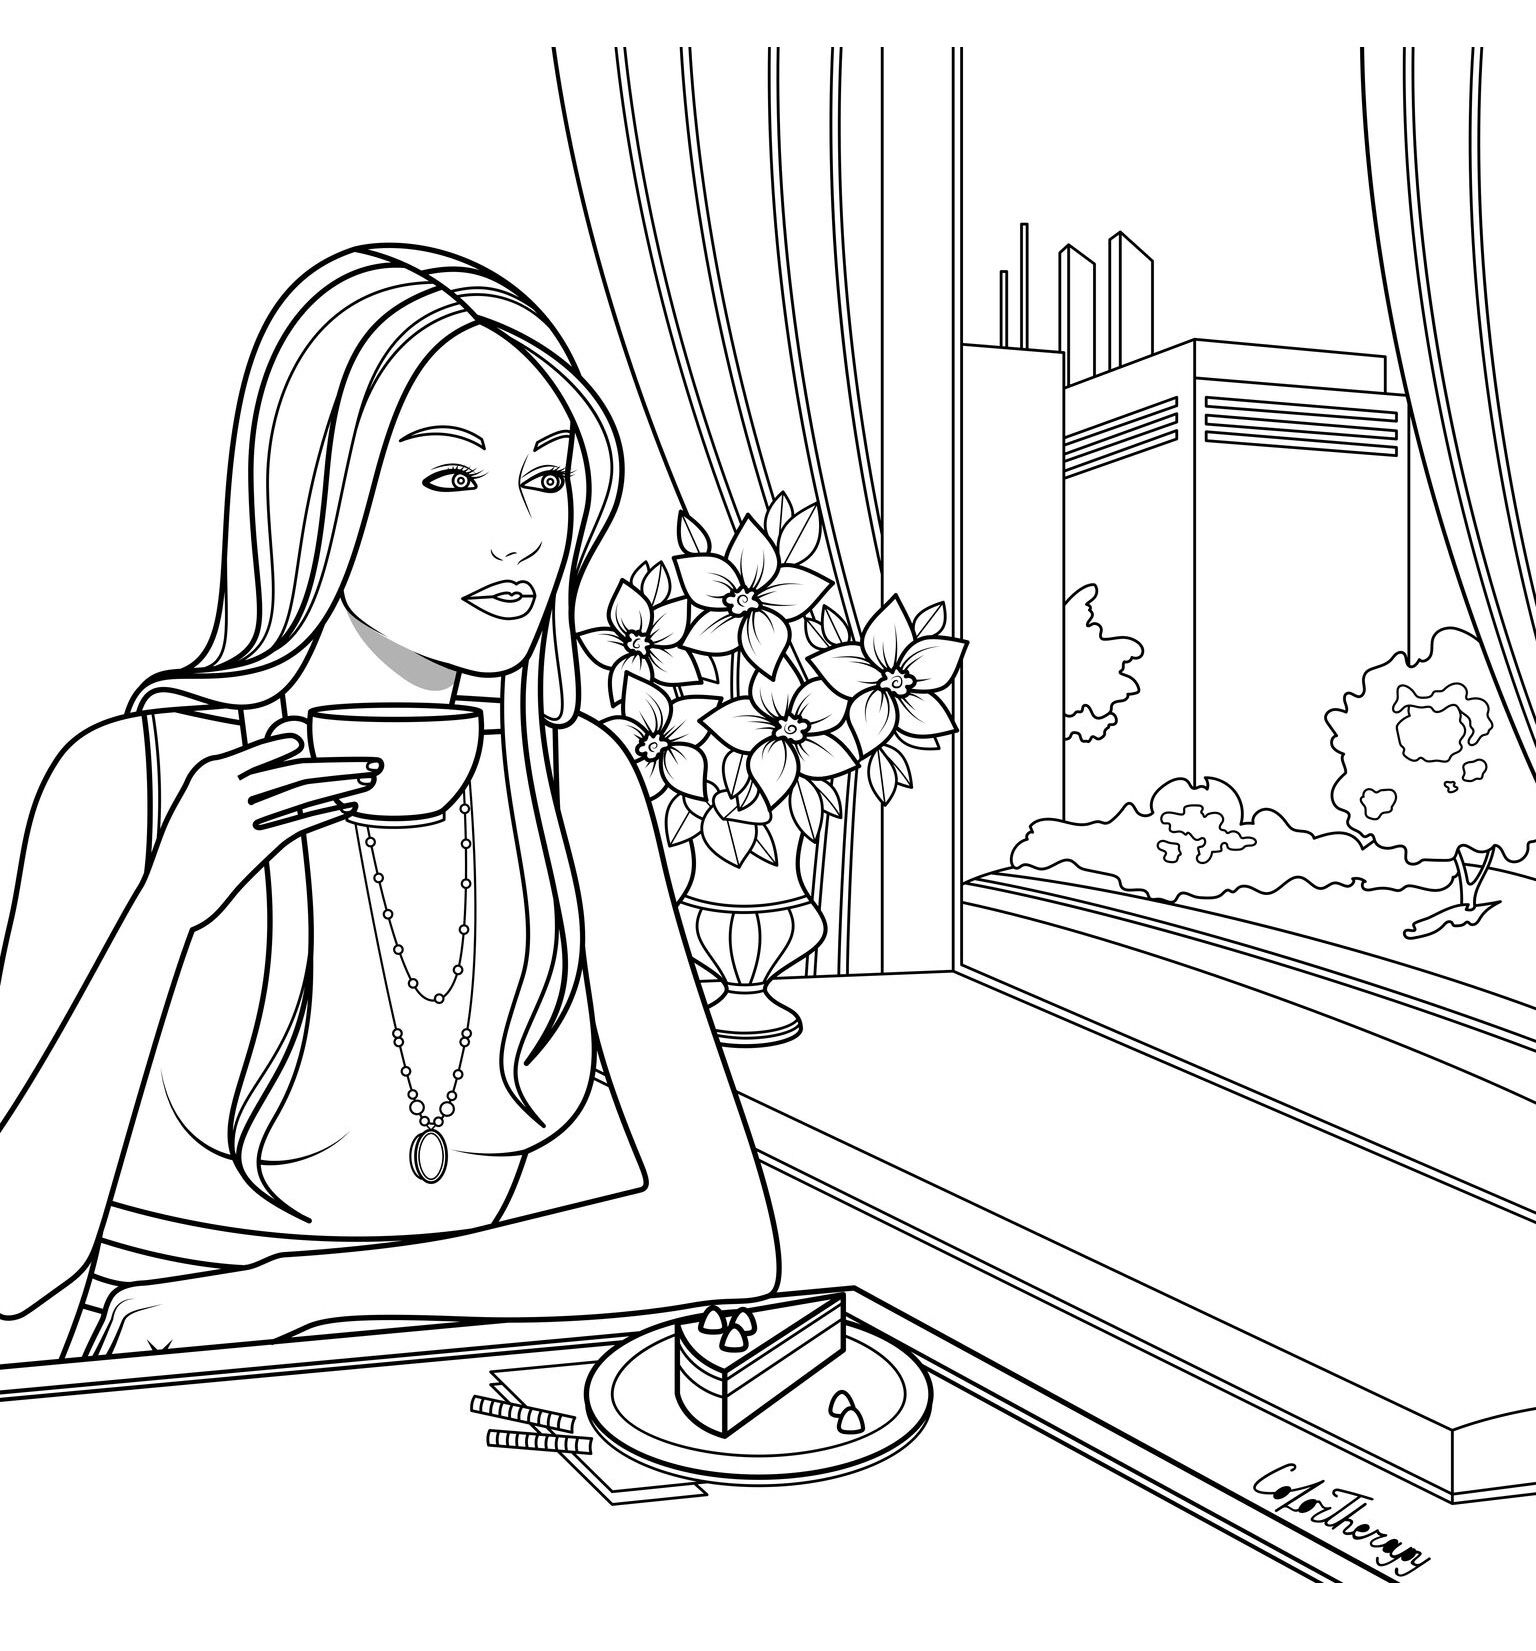 The Sneak Peek For The Next Gift Of The Day Tomorrow Do You Like This One Woman Cafe Coloring Pages Mandala Coloring Pages Easy Coloring Pages